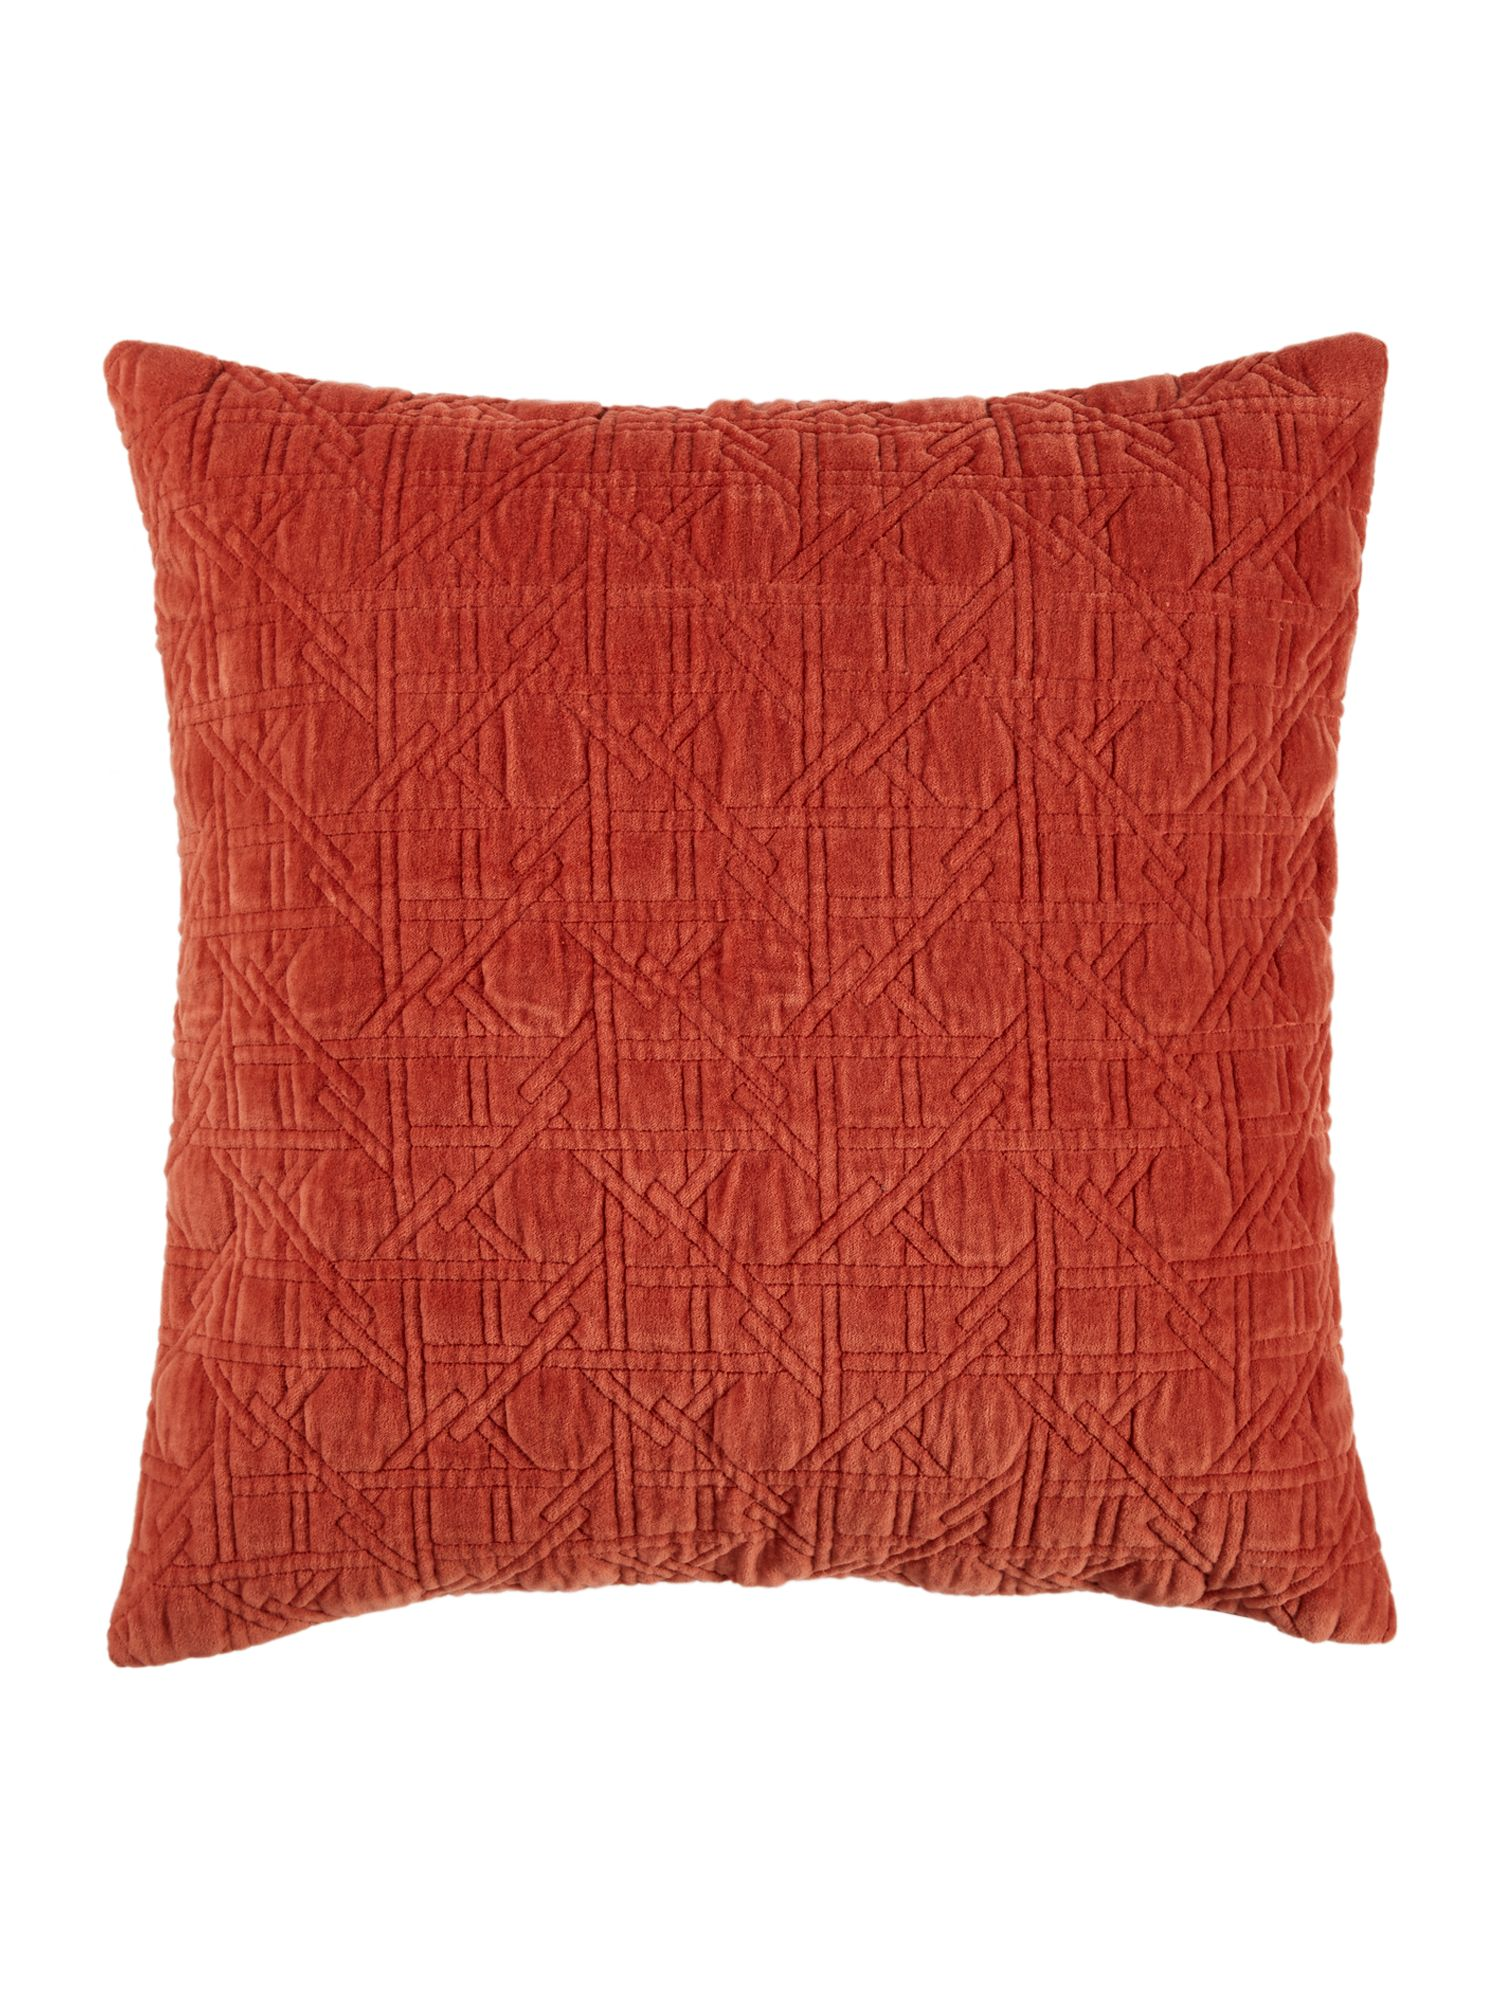 Living by Christiane Lemieux Living by Christiane Lemieux Geometric design velvet sham, rust